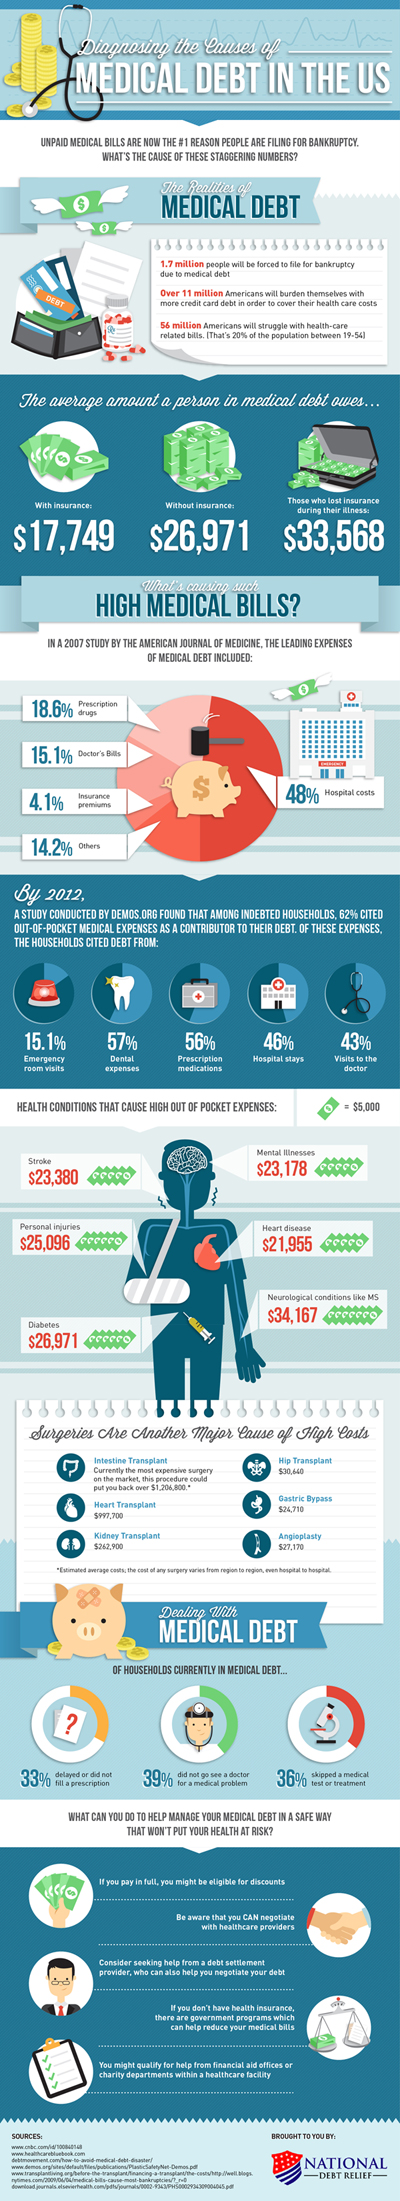 Infographic: Diagnosing the Causes of Medical Debt in the US